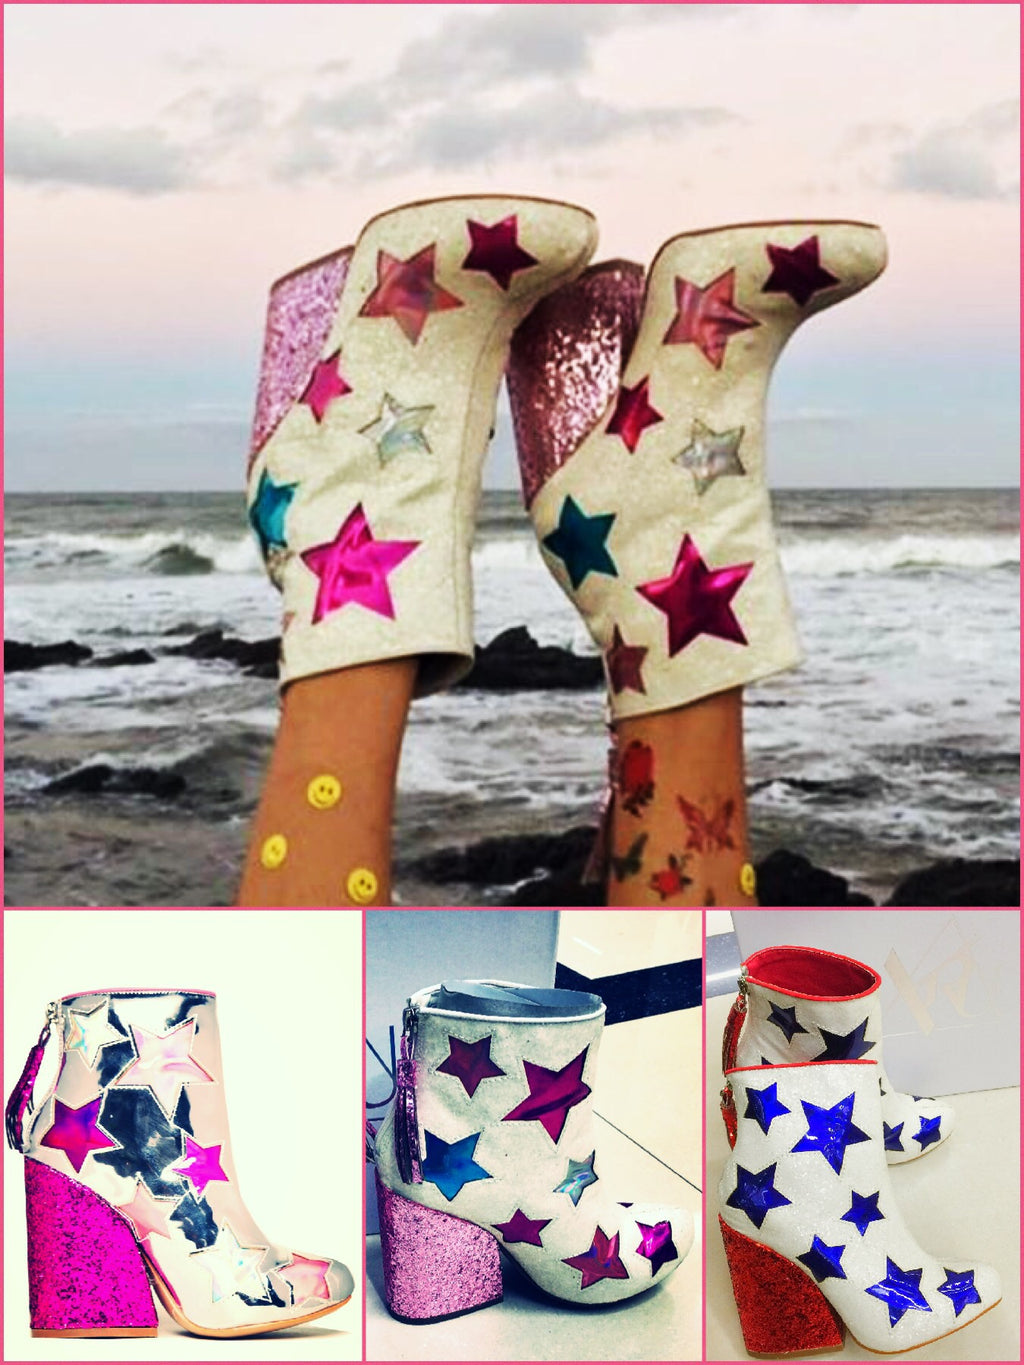 BlissGirl - You're A Star Sparkle Boots - - Harajuku - Kawaii - Alternative